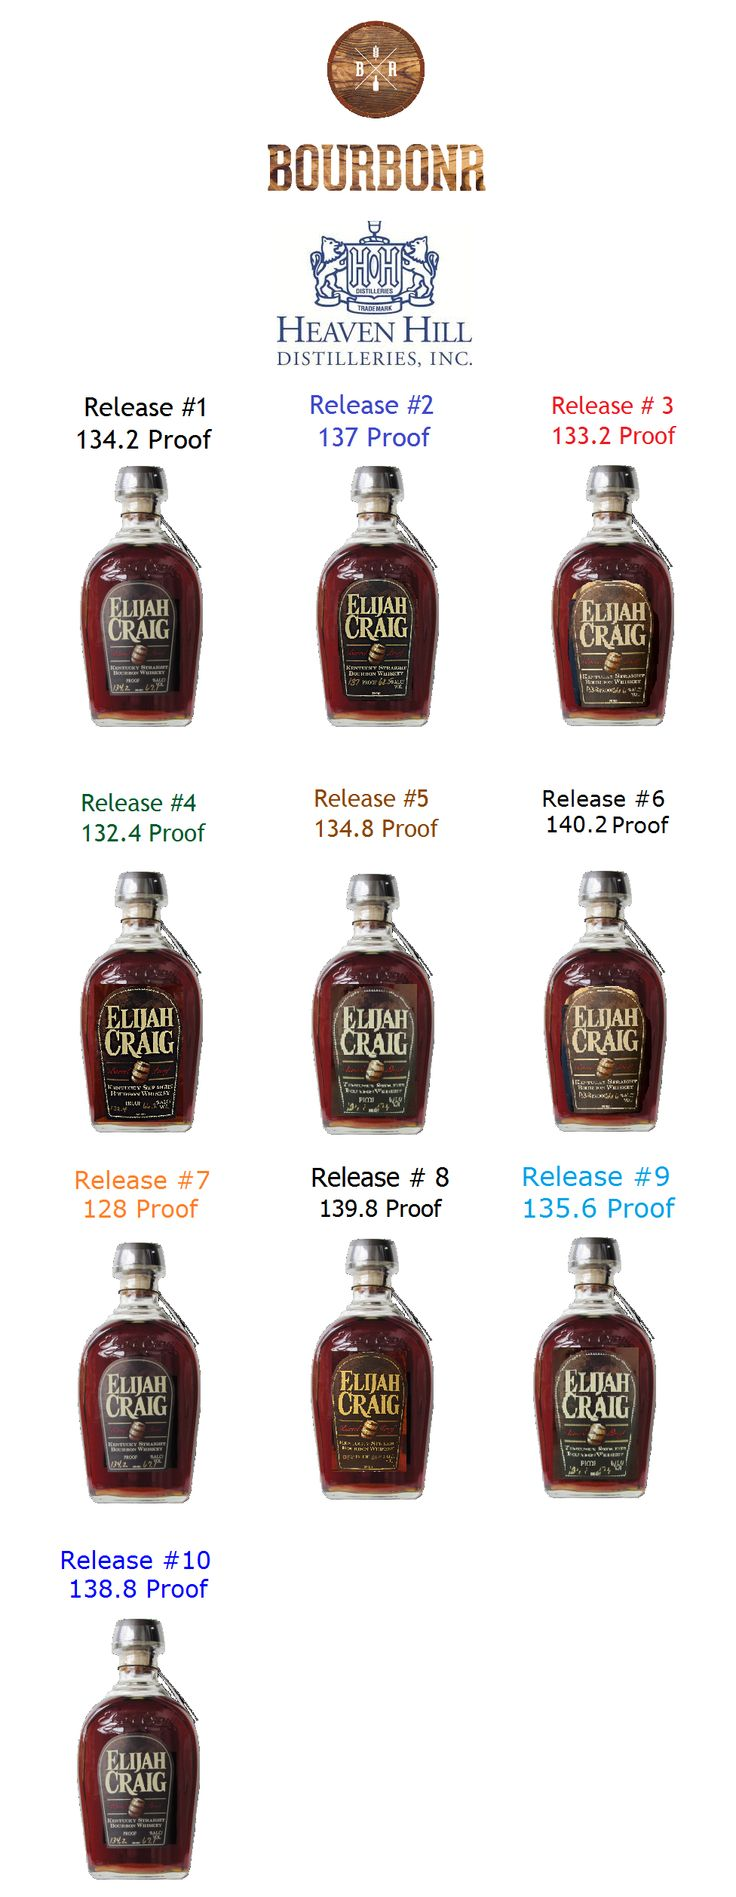 Elijah Craig Barrel Proof Release Cheat Sheet In the fall of 2013, Heaven Hill Distillery released the first Elijah Craig Barrel Proof (ECBP) which quickly became one of the hottest bourbons in the market. ECBP is a 12-year-old uncut, unfiltered bourbon which Heaven Hill releases once a quarter. Aside from the excellent flavor and high proof …